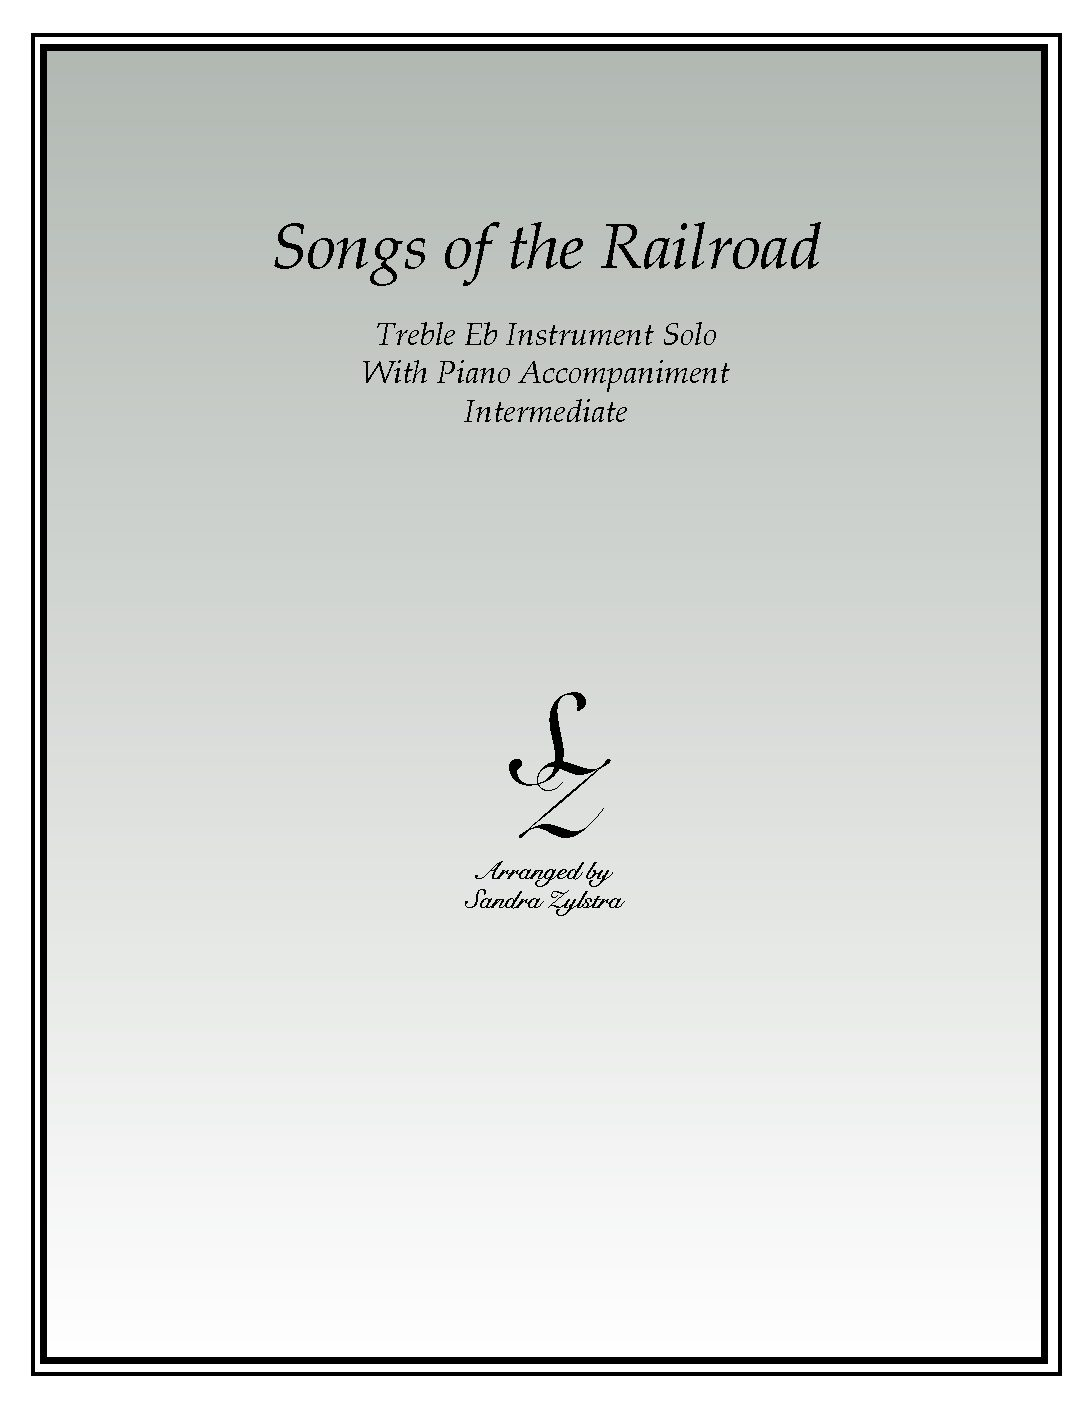 Songs Of The Railroad -Treble Eb Instrument Solo